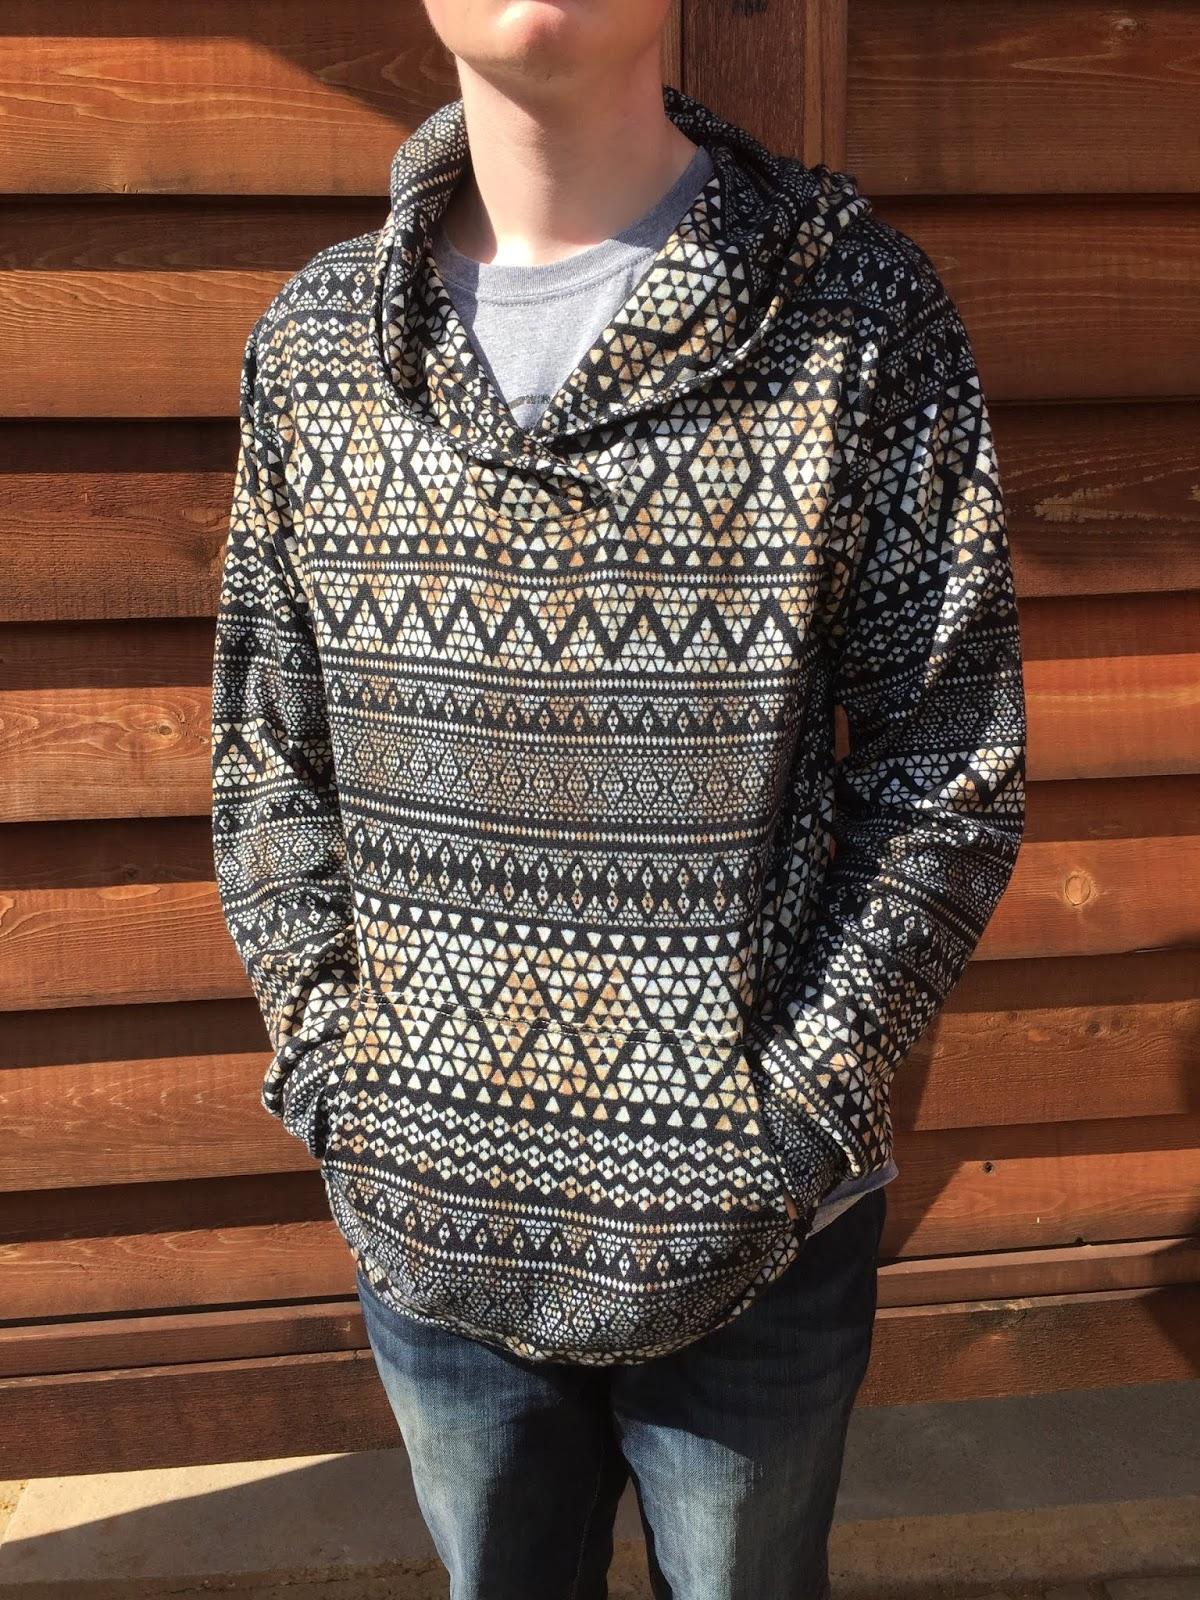 5f5882033 The Finlayson is a men s sweater that is available in 2 variations--shawl  collar or hoodie